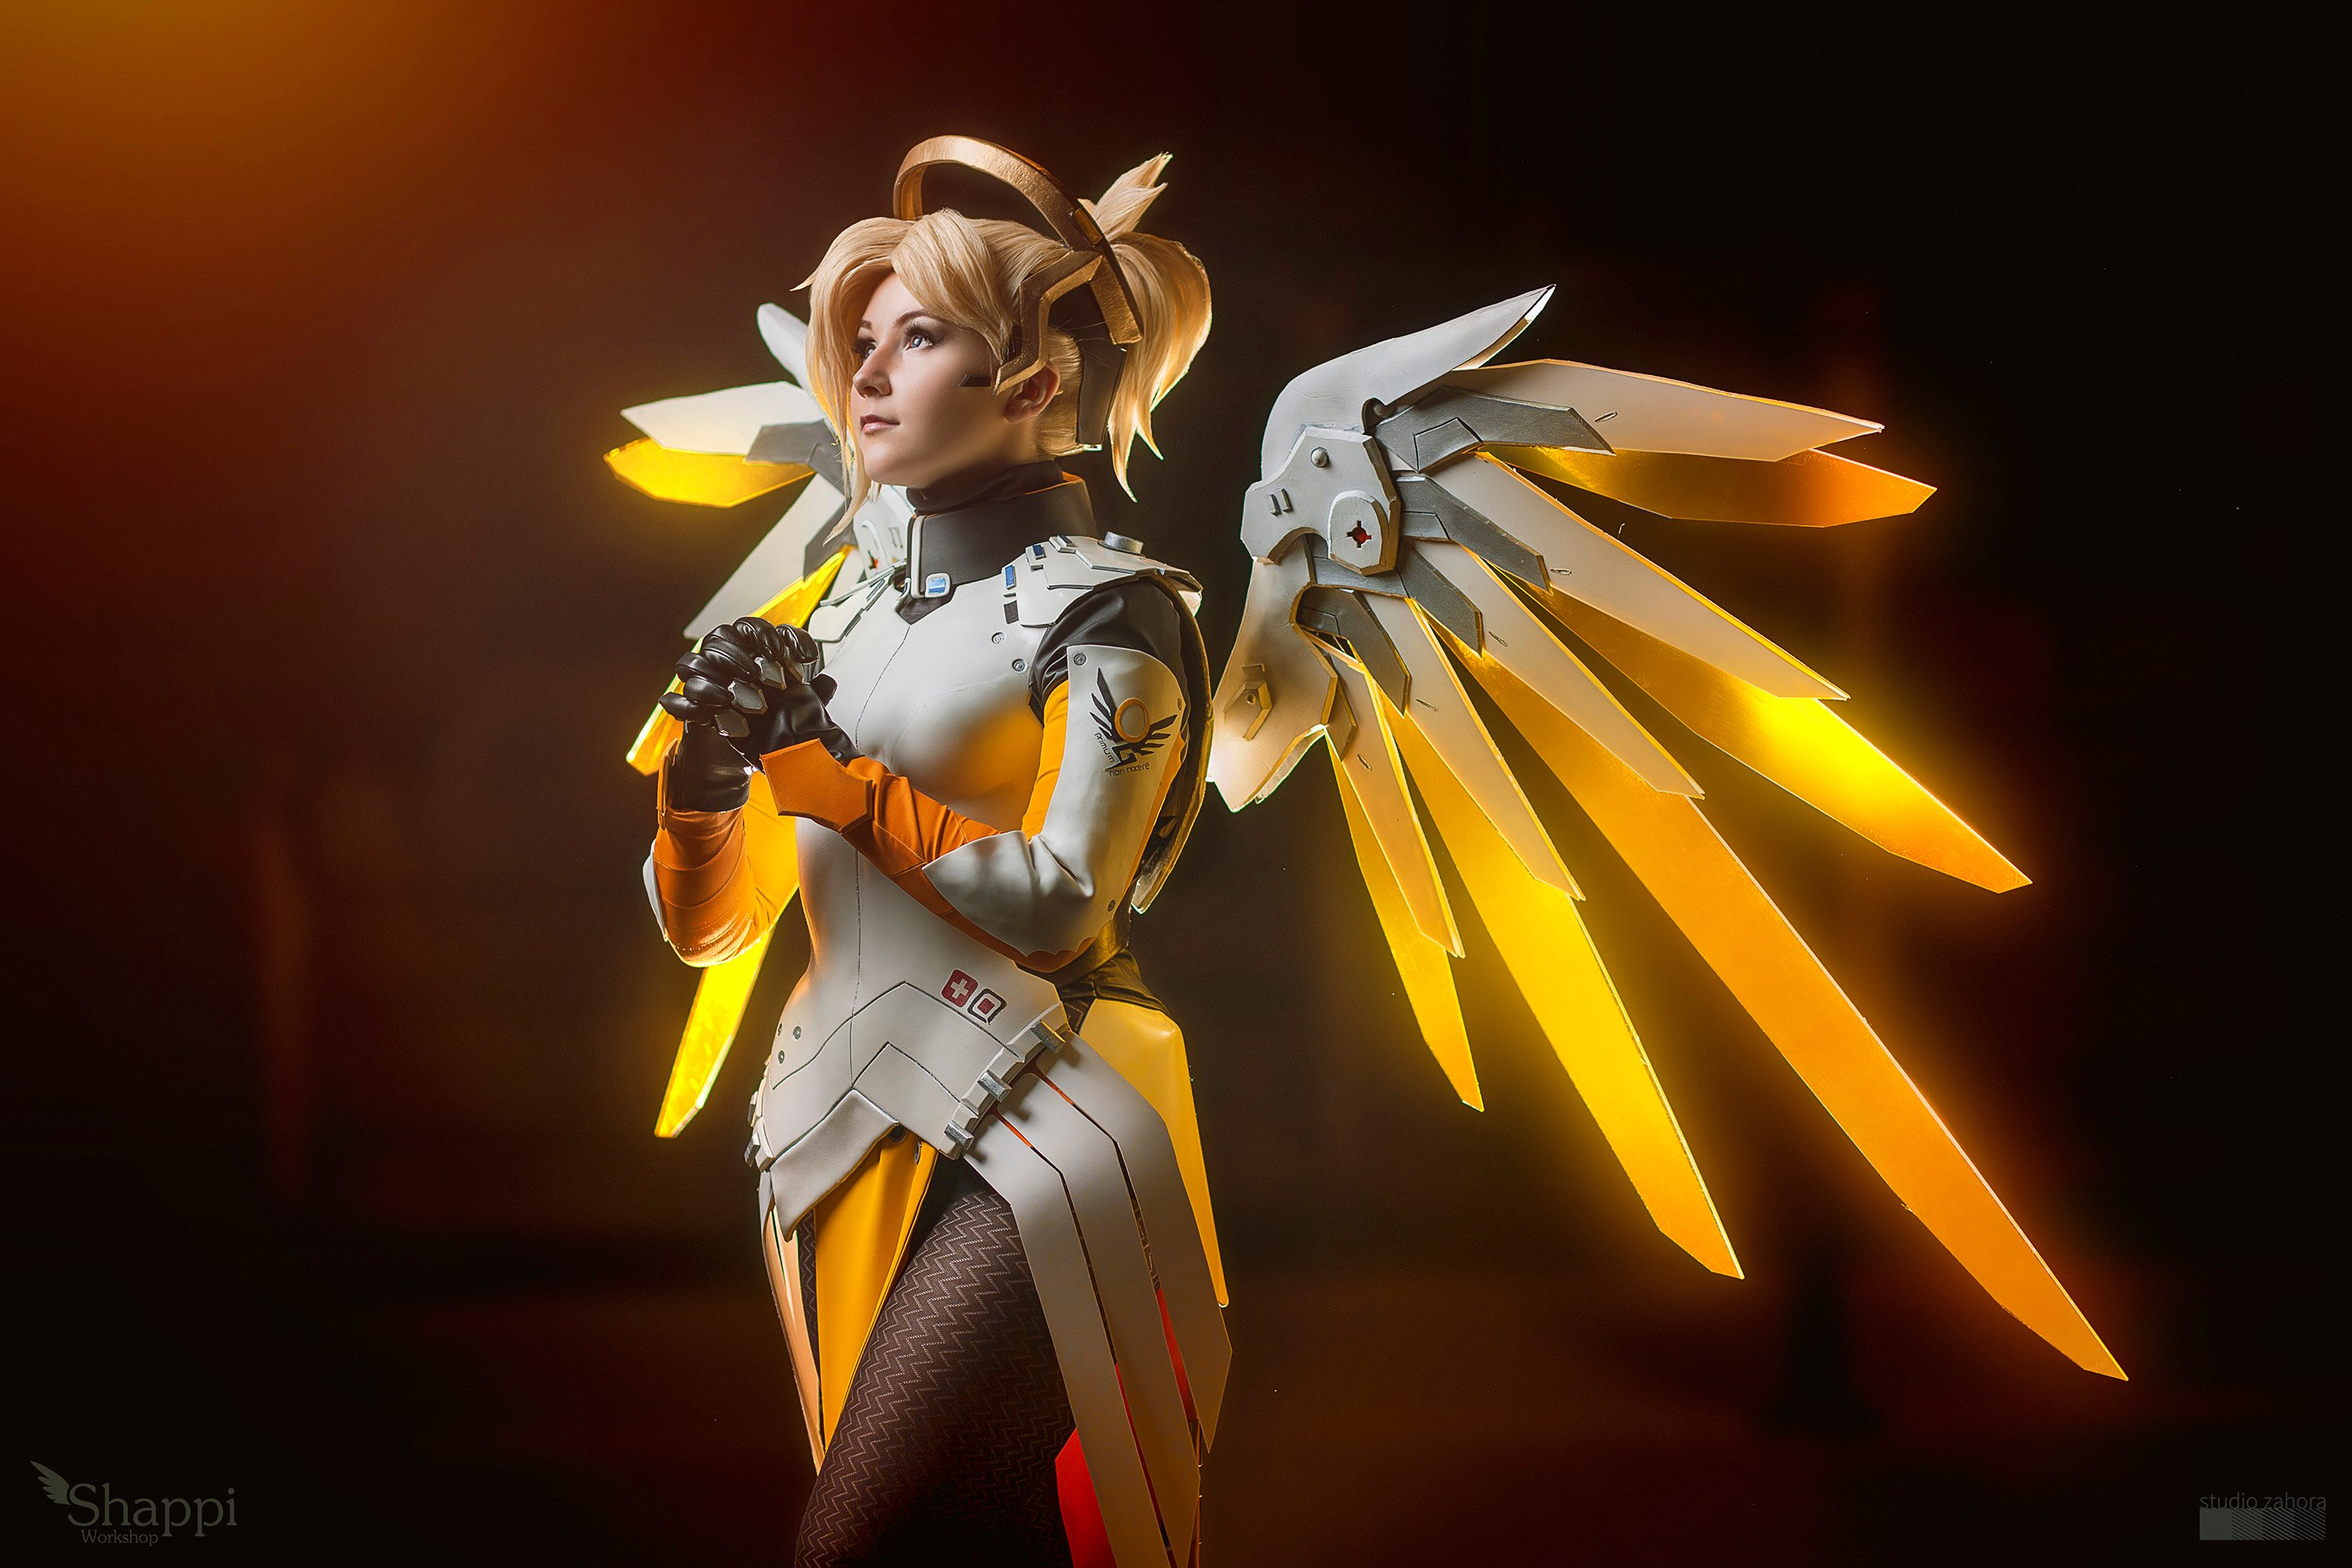 Aleksandra Overwatch overwatch mercy cosplay takes flight « adafruit industries